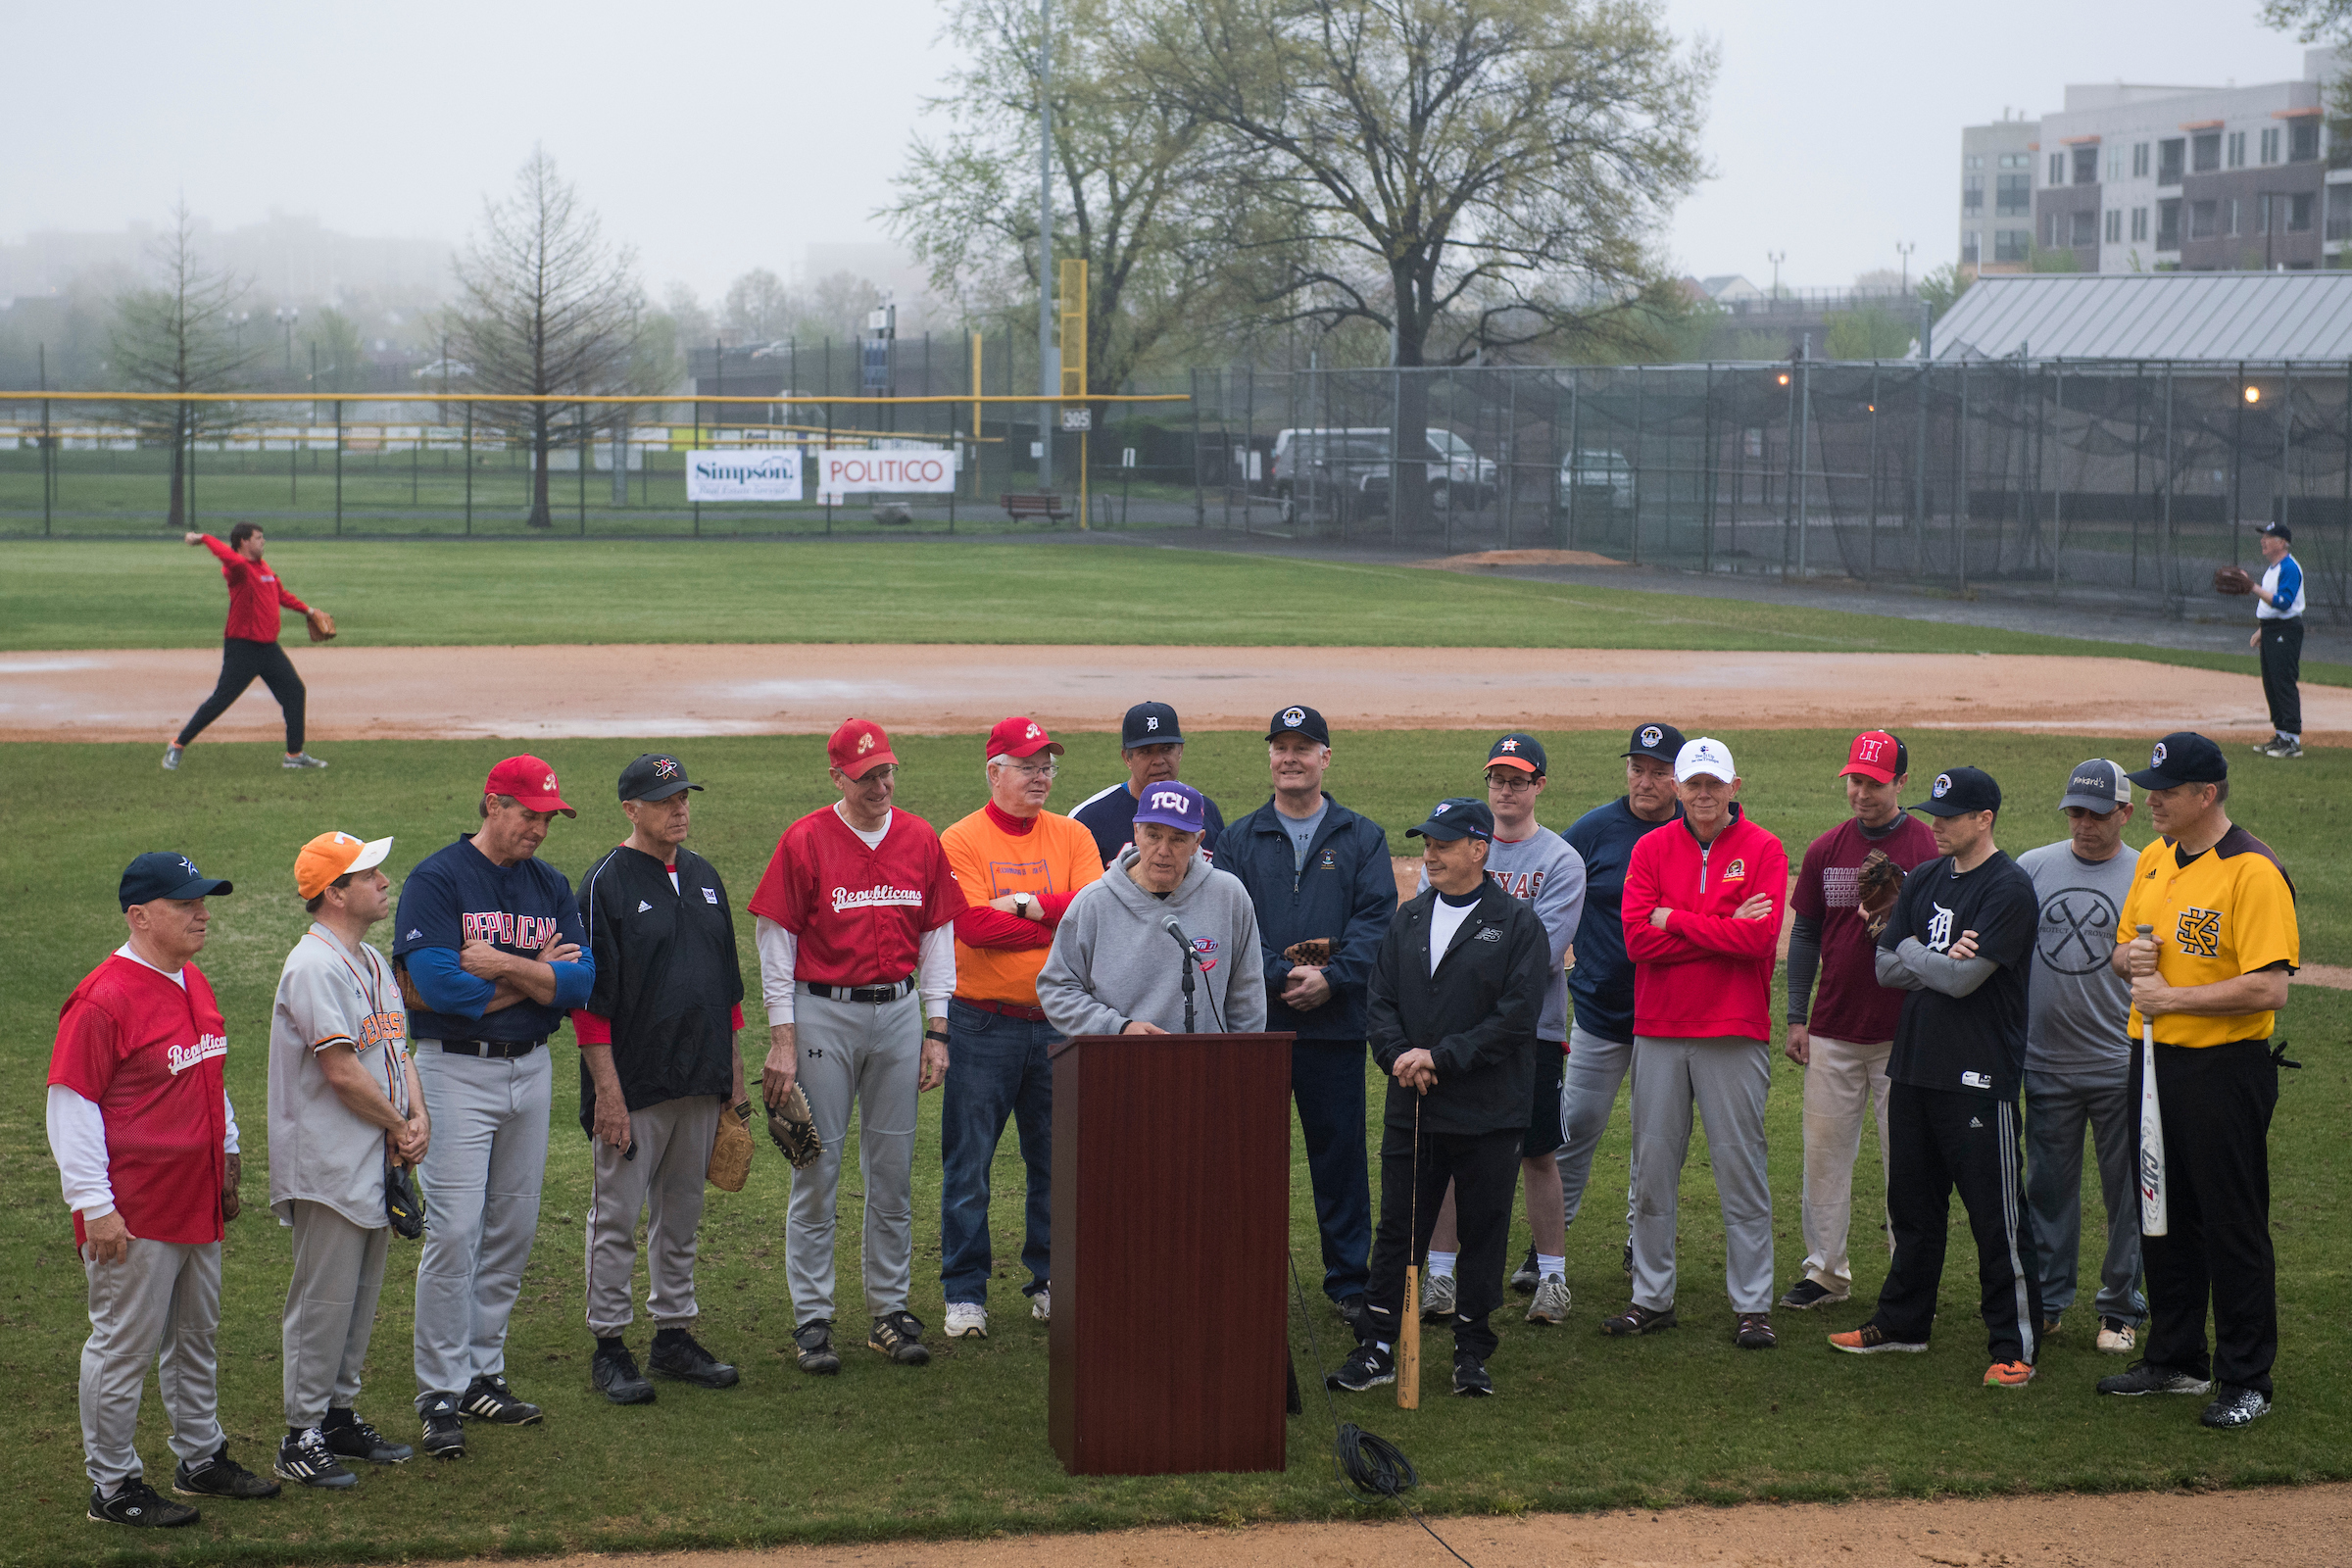 UNITED STATES - APRIL 25: Rep. Roger Williams, R-Texas, speaks during news conference with members of the Republican baseball team after the first practice of the year at Eugene Simpson Stadium Park in Alexandria, Va., on April 25, 2018. Williams' aide Zack Barth was one of injured in last year's shooting at a team practice. (Photo By Tom Williams/CQ Roll Call)